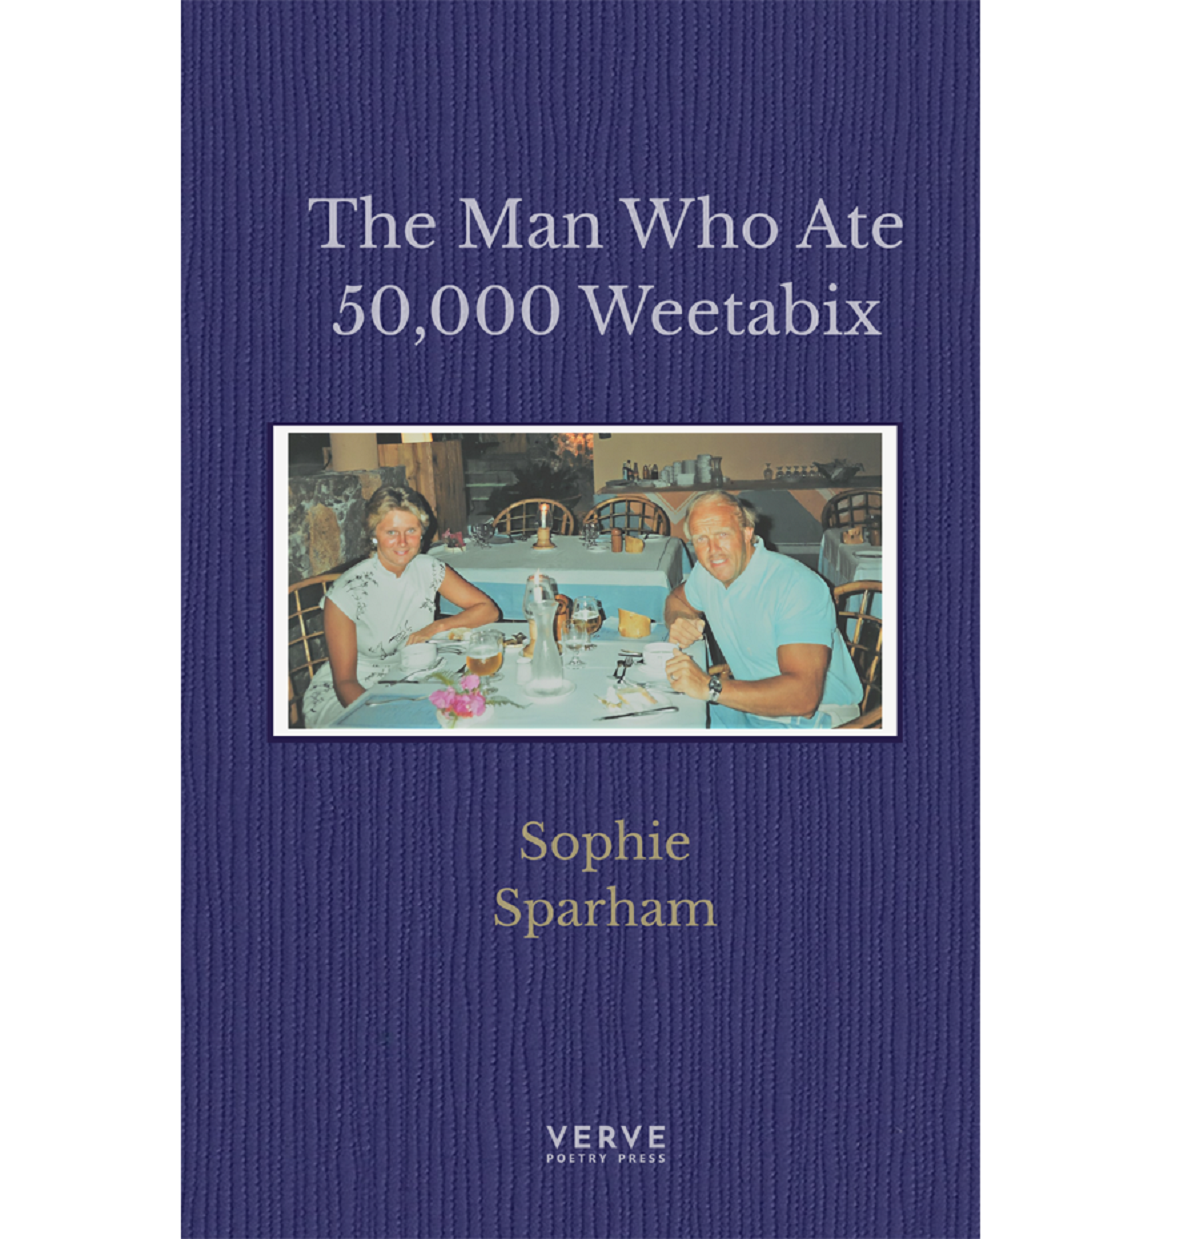 Book Review: Sophie Sparham – The Man Who Ate 50,000 Weetabix